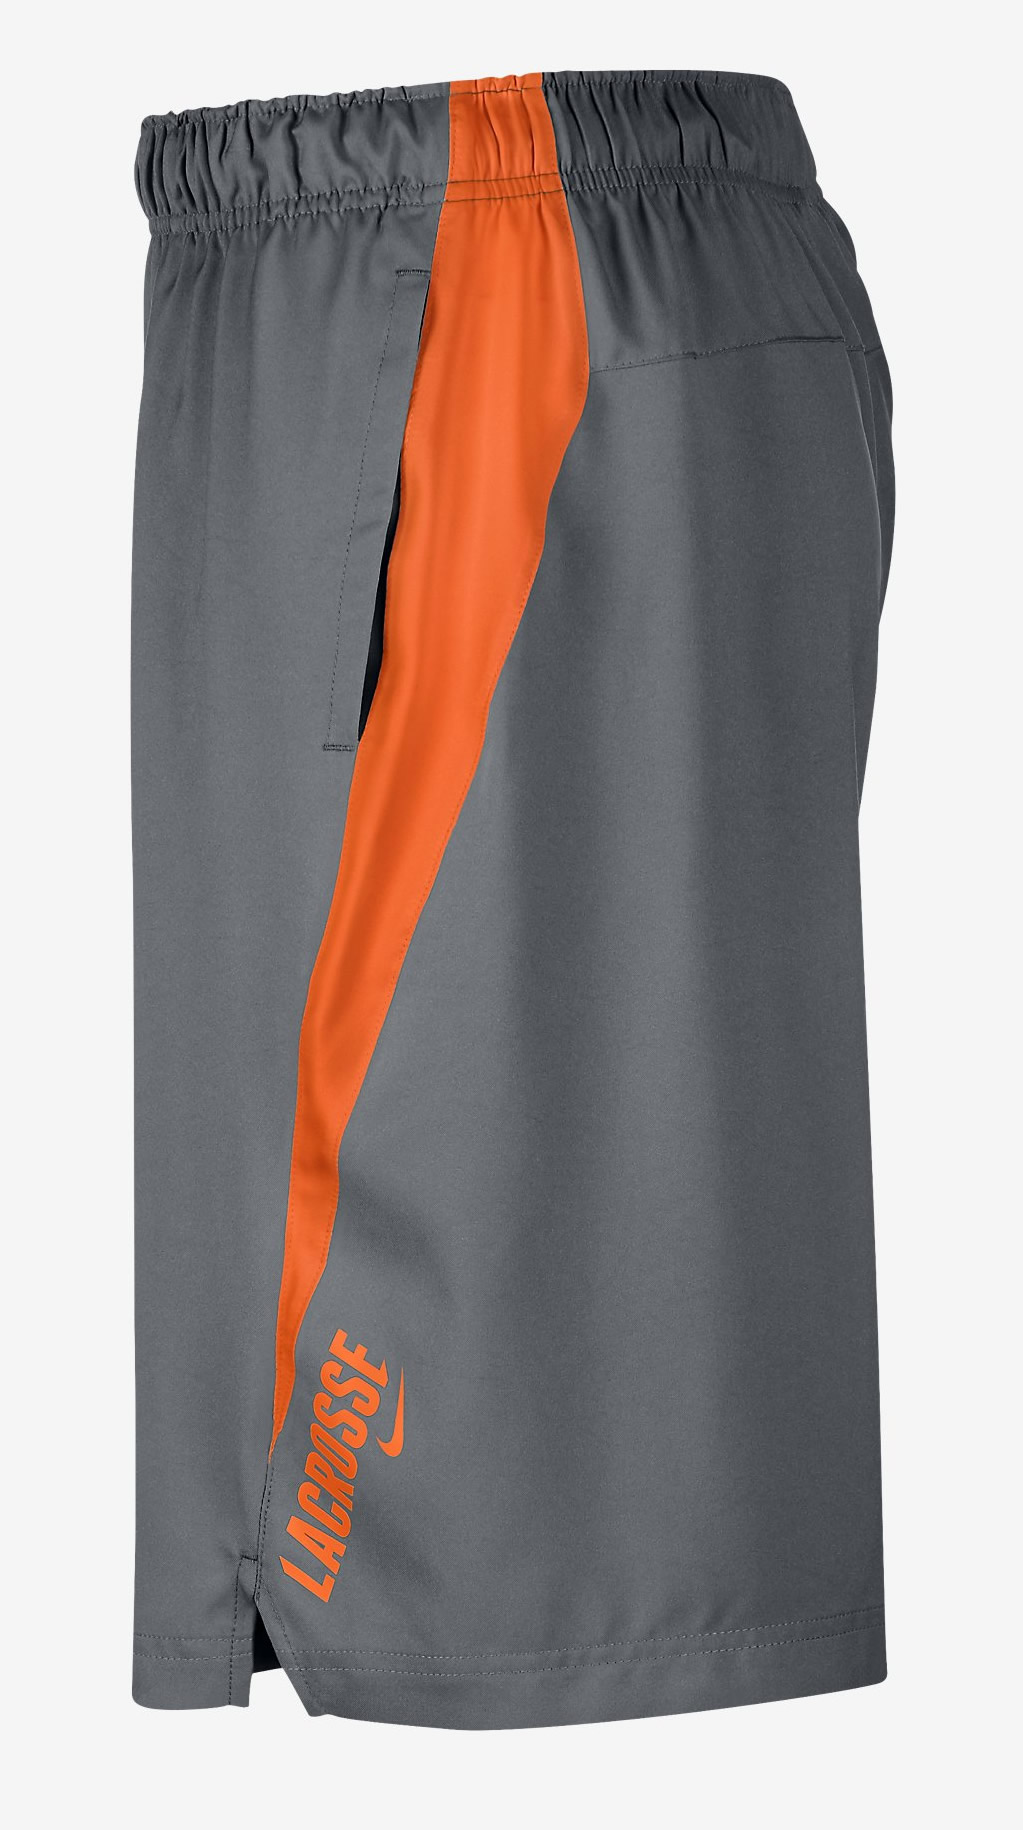 Lacrosse Woven Men's Training Shorts by Nike